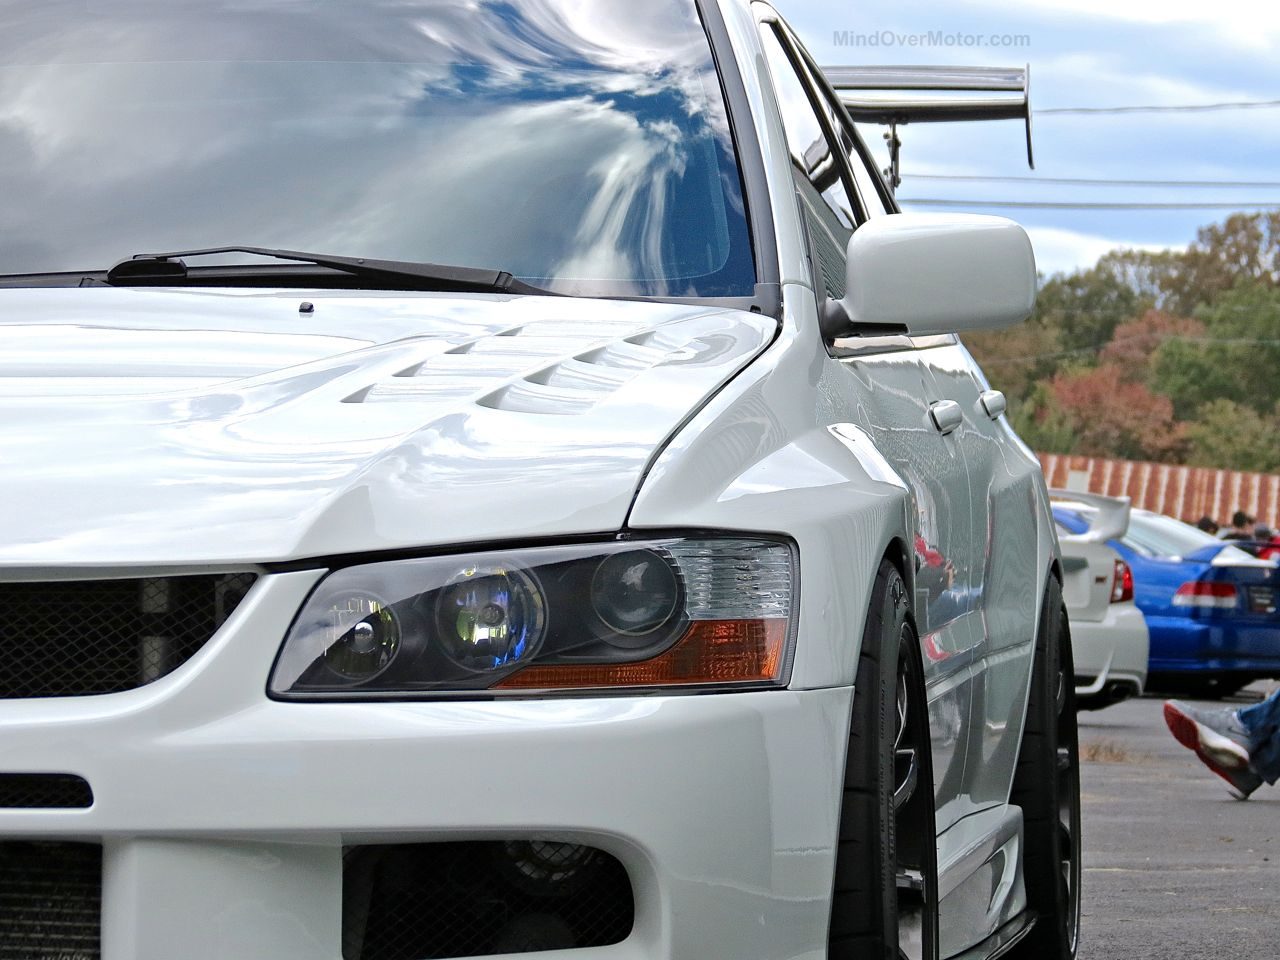 Modified Mitsubishi Lancer Evo First Class Fitment 1